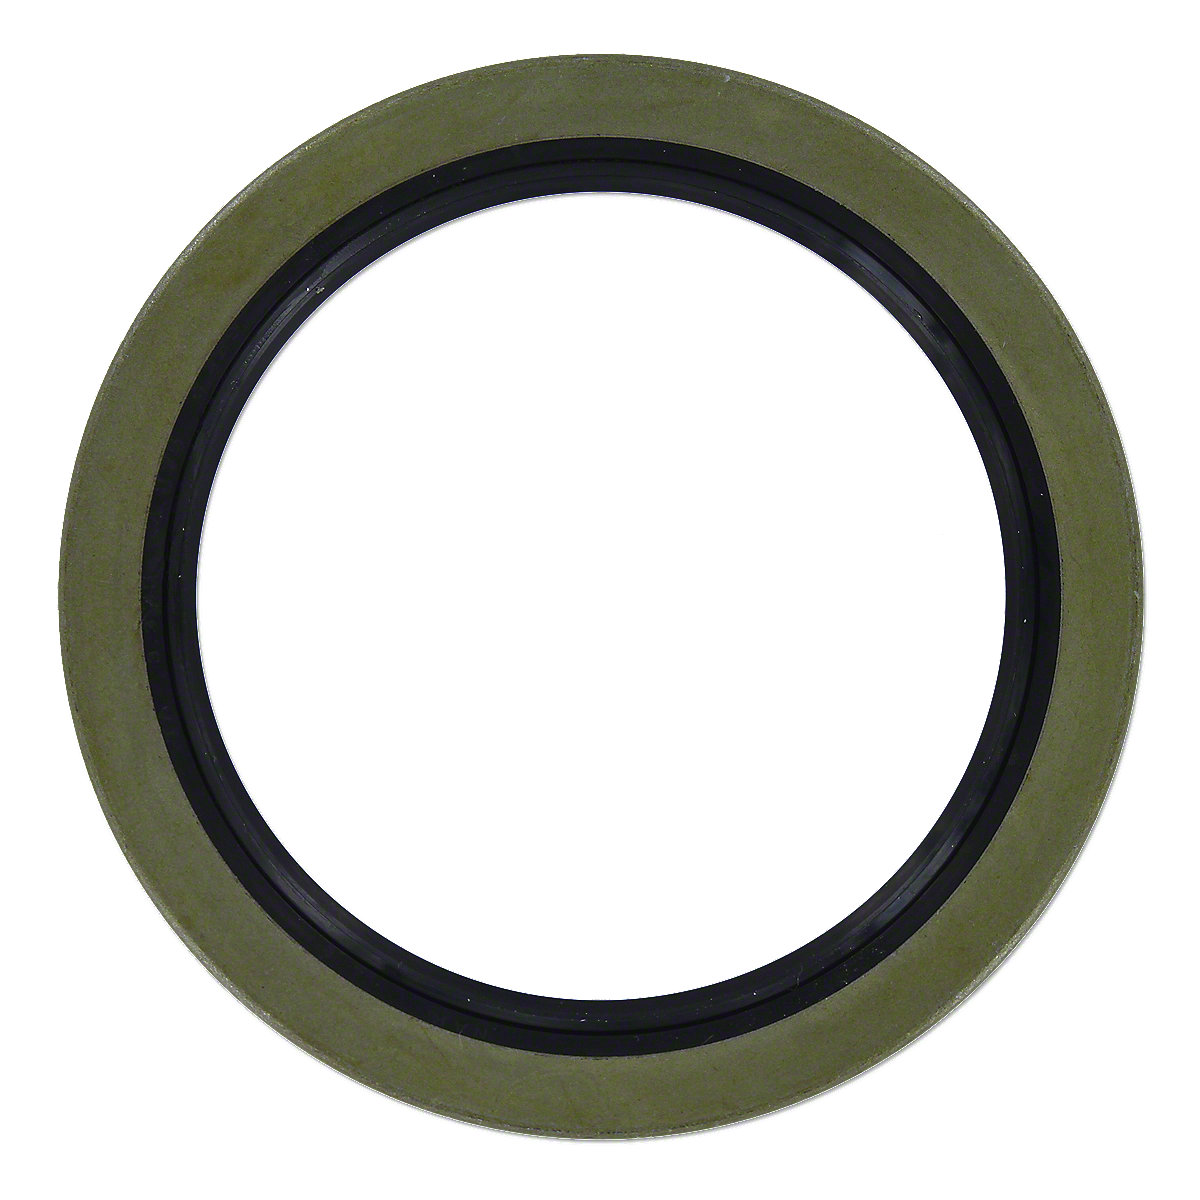 Rear Crankshaft Seal For Massey Ferguson: TE20, TO20, TO30, 135, 150, 202, 204, 230, 235, 245, 2135, 2200, 2500, 35, 50, 40, Massey Harris: Pony.